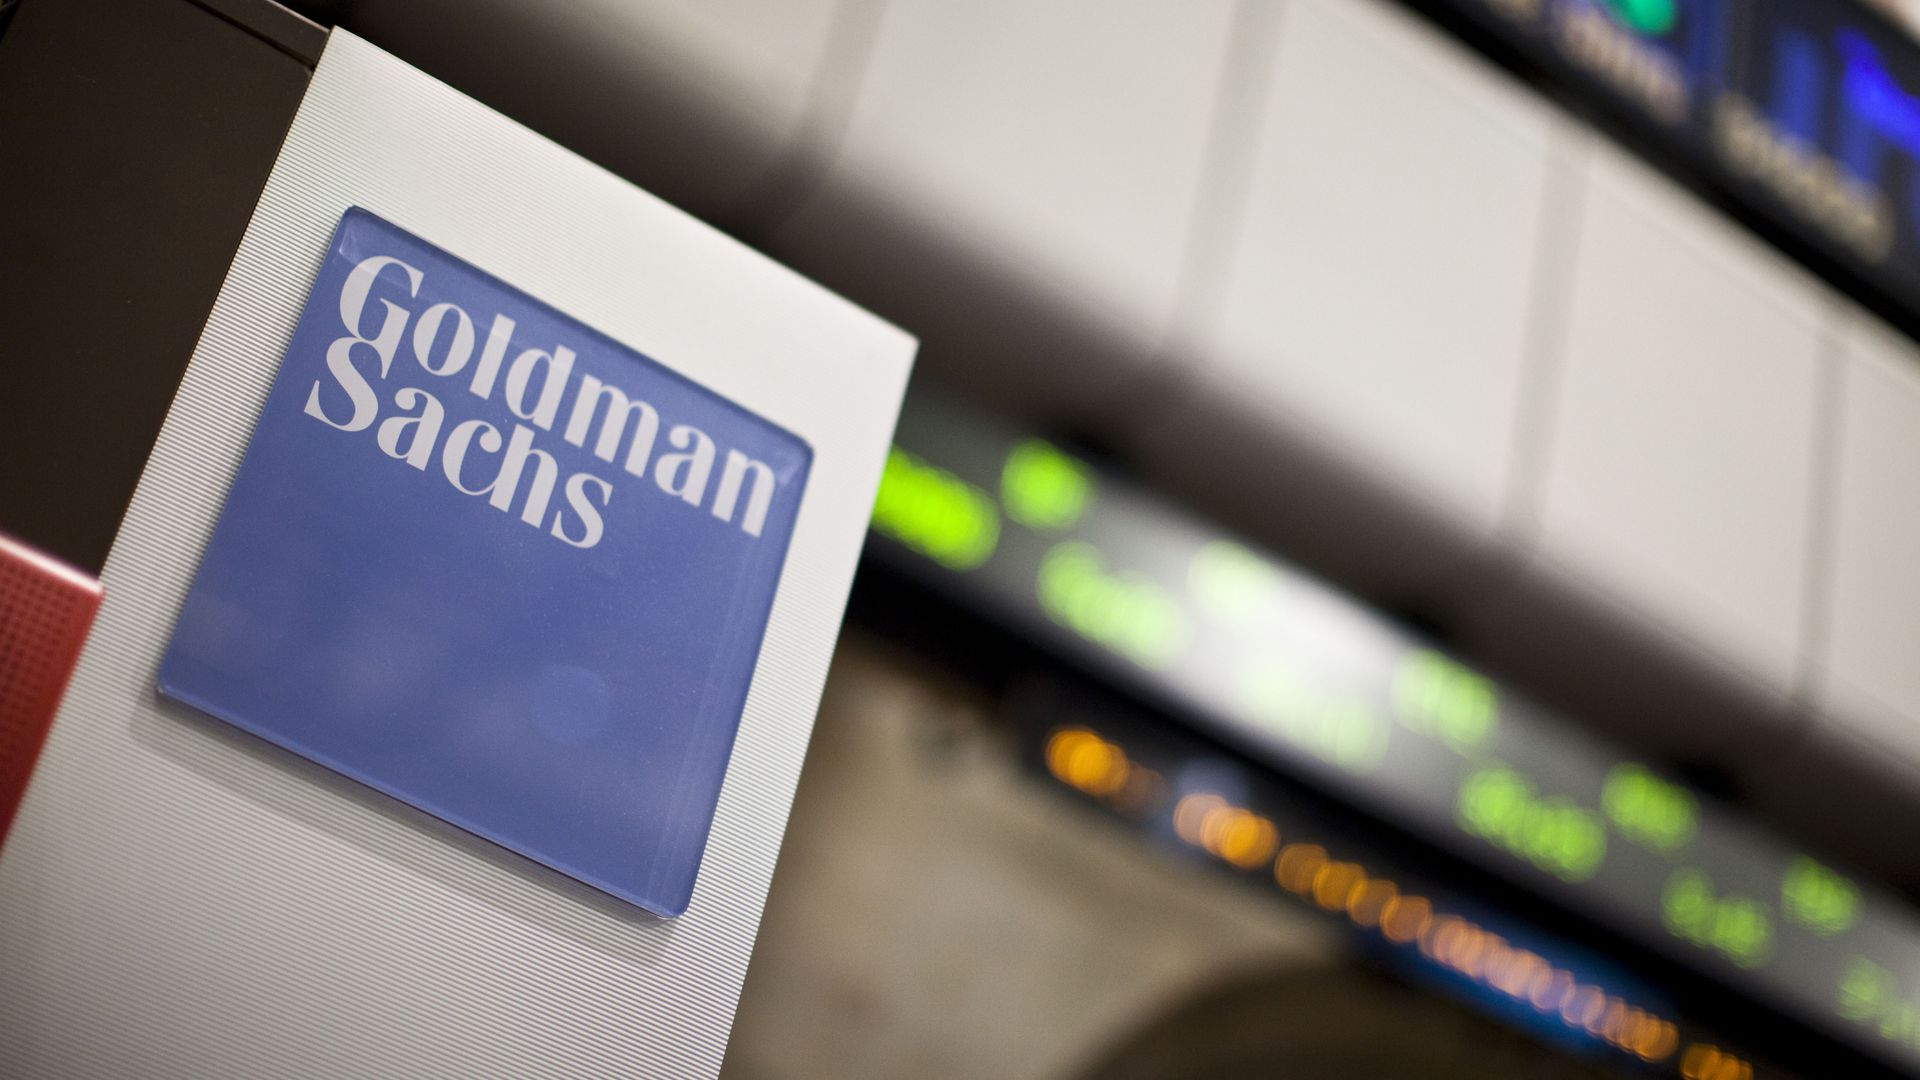 Goldman Sachs trading booth on the floor of the New York Stock Exchange in New York, on Thursday, January 6, 2011.